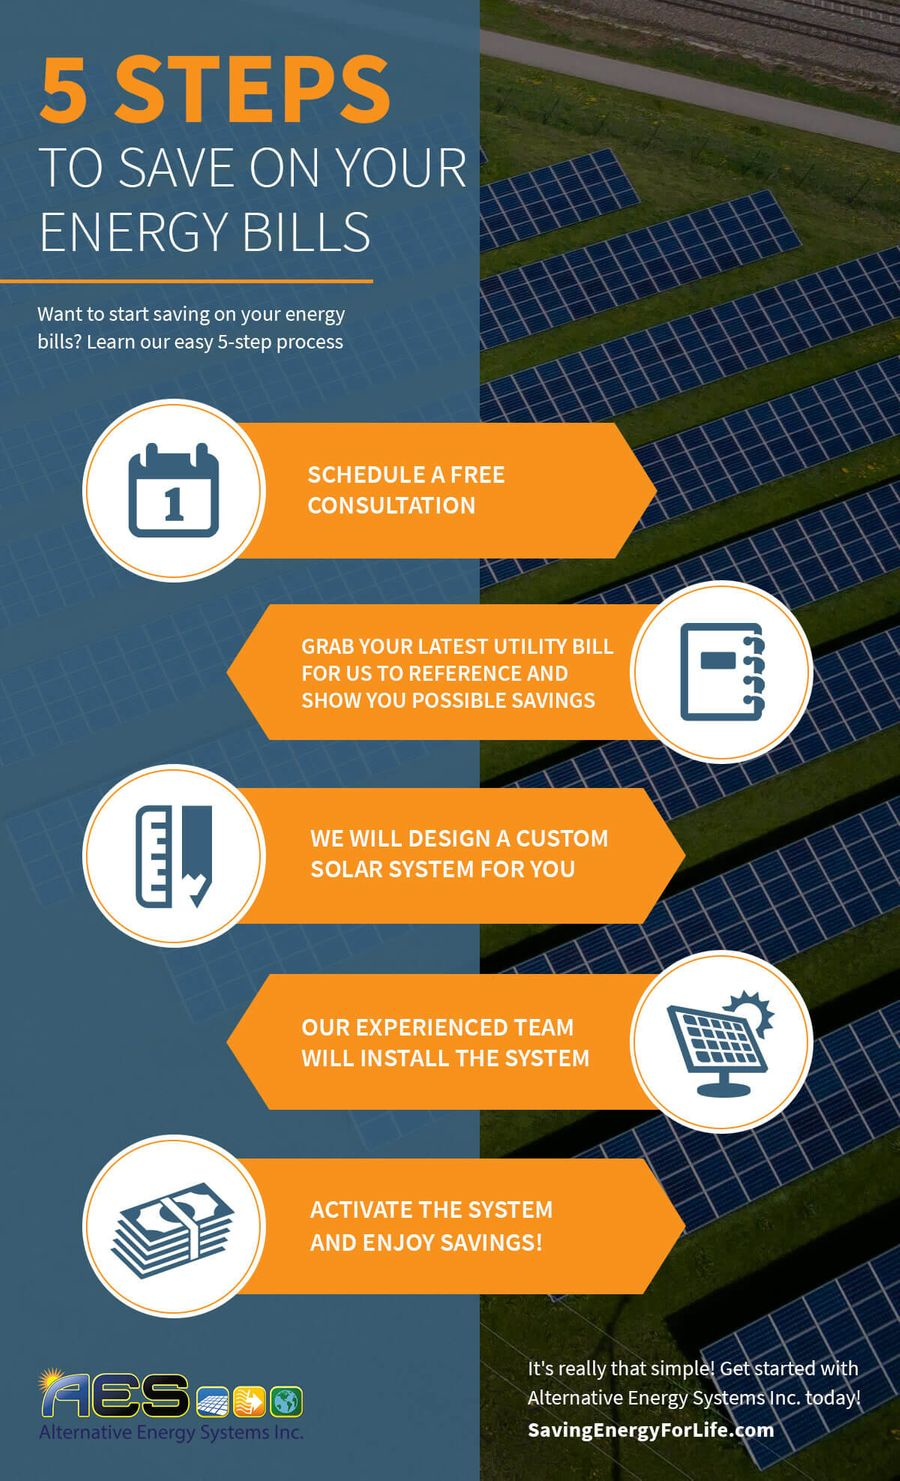 5 Steps To Save On Your Energy Bills Infographic